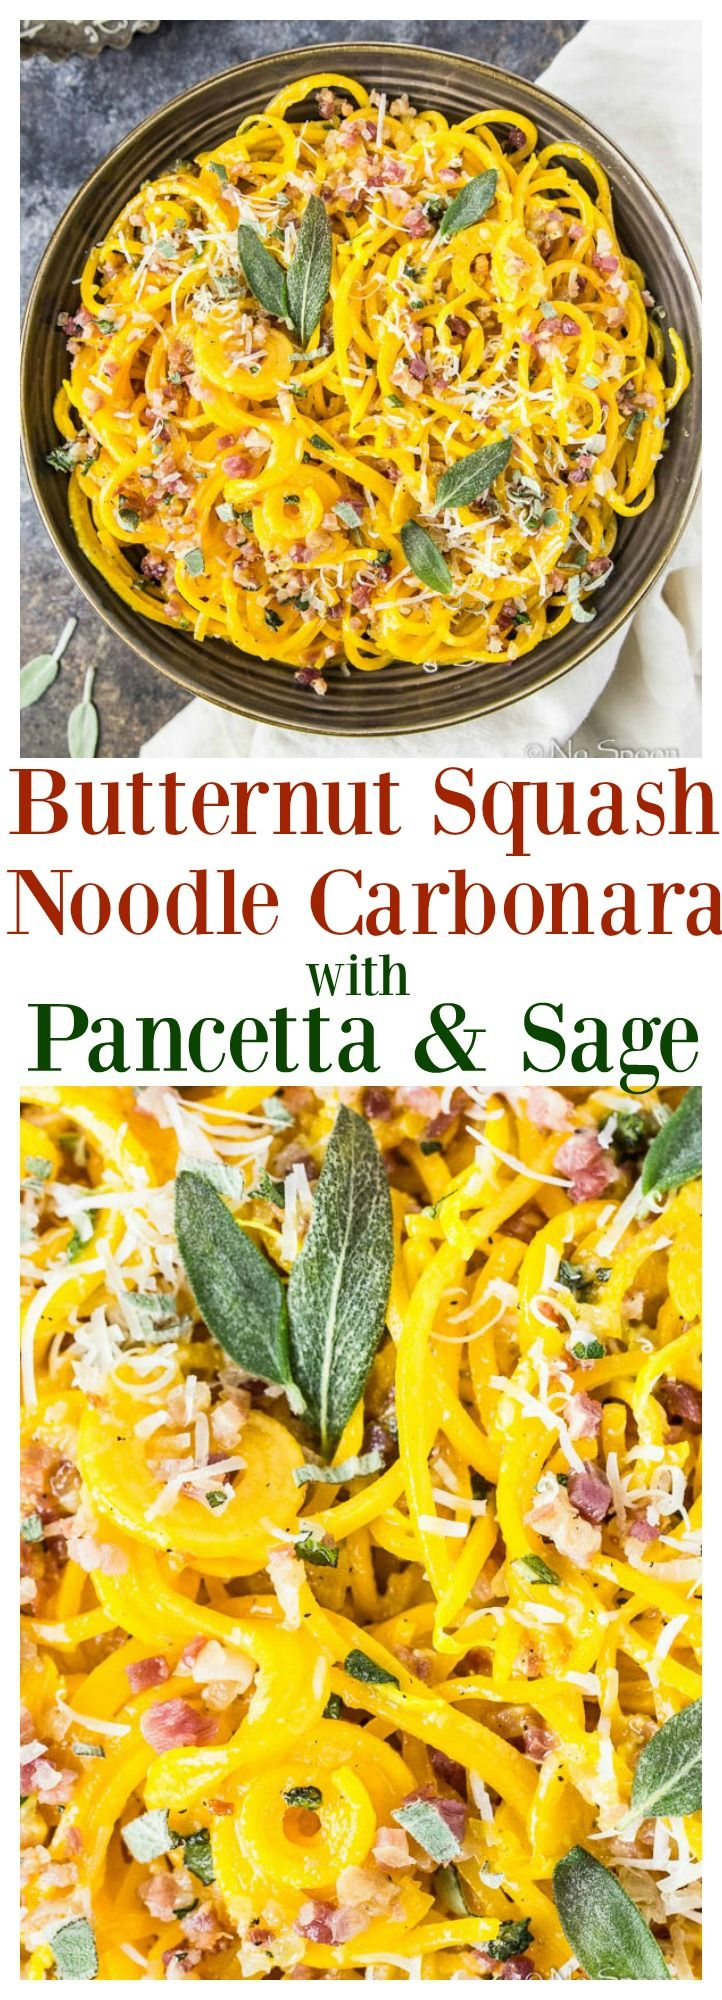 Butternut Squash Noodles coated in a rich, creamy, cheesy Carbonara sauce and tossed with Pancetta & Sage